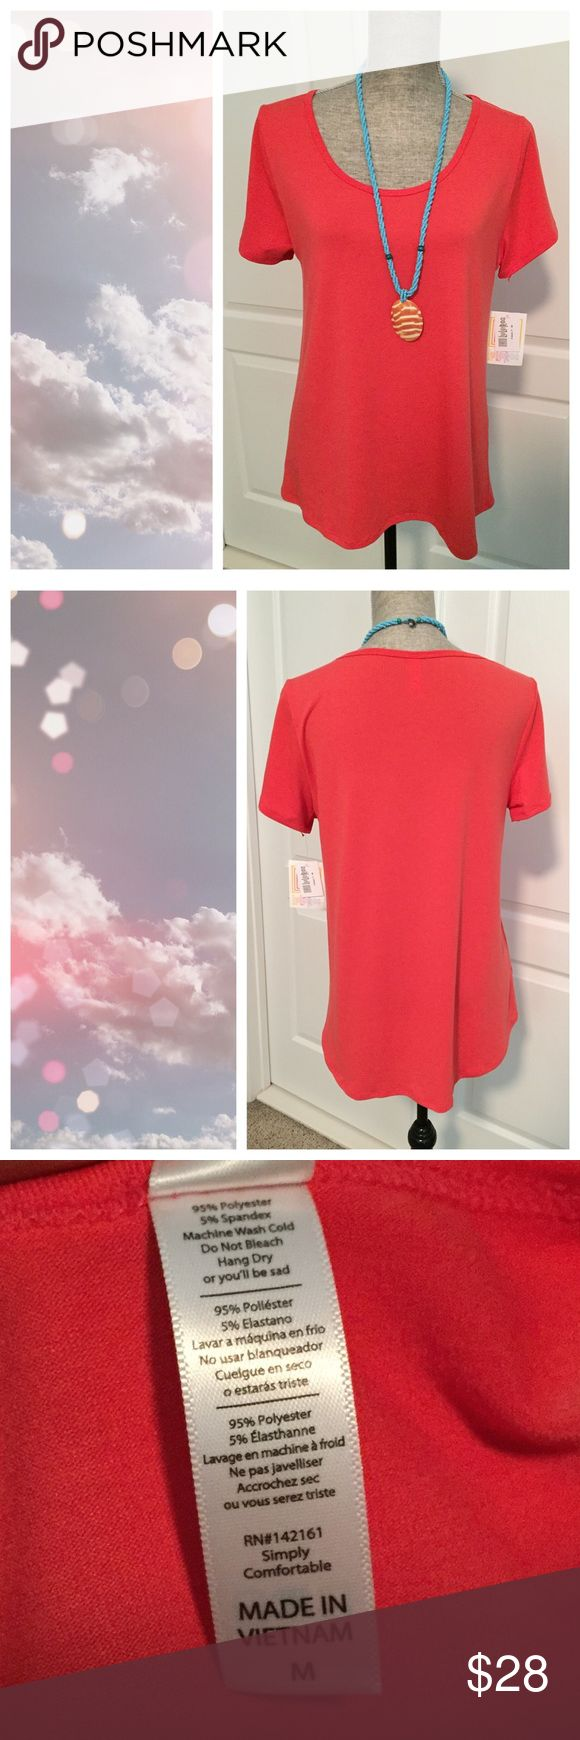 BNWT LuLaRoe Classic Tee - Rare Solid! Pink! Brand New With Tags  The color isn't coming across right in the picture.  It's a beautiful coral pink color. Sort of a slinky material, not cottony.   Necklace solid separately - bundle it with this top and save 10% automatically!  ✔️Bundle and save 📦 ✔️Reasonable offers welcomed ❤ ✔️Dog friendly home 🐶 ✔️Mail quickly 📫 ❌No trades 👎🏼 ❌No modeling 🙈 ❌Cat free home 🐱 ❌Smoke free home 🚭 LuLaRoe Tops